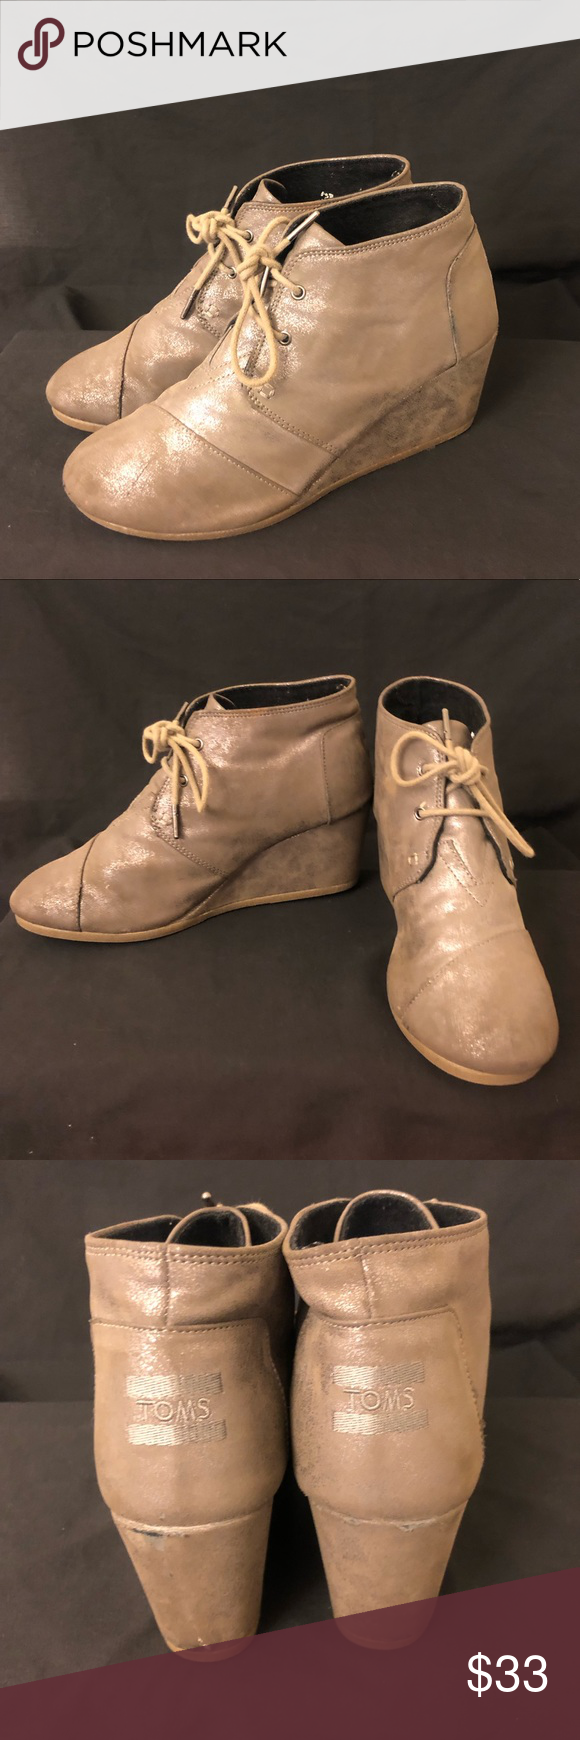 Toms Wedge booties Super cute and comfortable Toms wedge booties. Tan with sparkling accent.  Slightly worn see pics for wear  Great for fall!! Toms Shoes Ankle Boots & Booties #tomwedges Toms Wedge booties Super cute and comfortable Toms wedge booties. Tan with sparkling accent.  Slightly worn see pics for wear  Great for fall!! Toms Shoes Ankle Boots & Booties #tomwedges